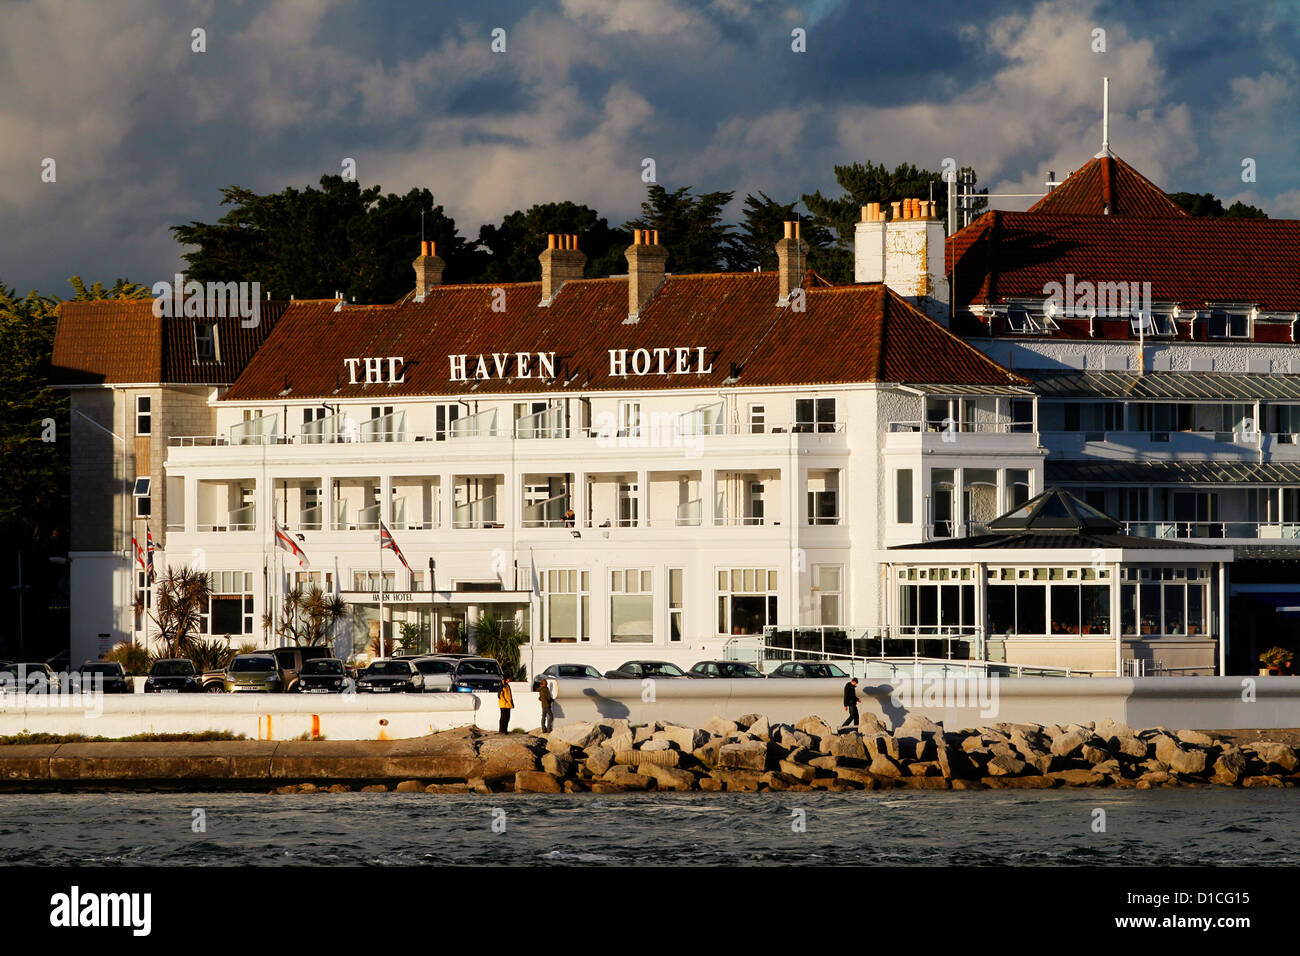 Bed And Breakfast Poole Harbour The Haven Hotel Sandbanks Poole Harbour Dorset England Stock